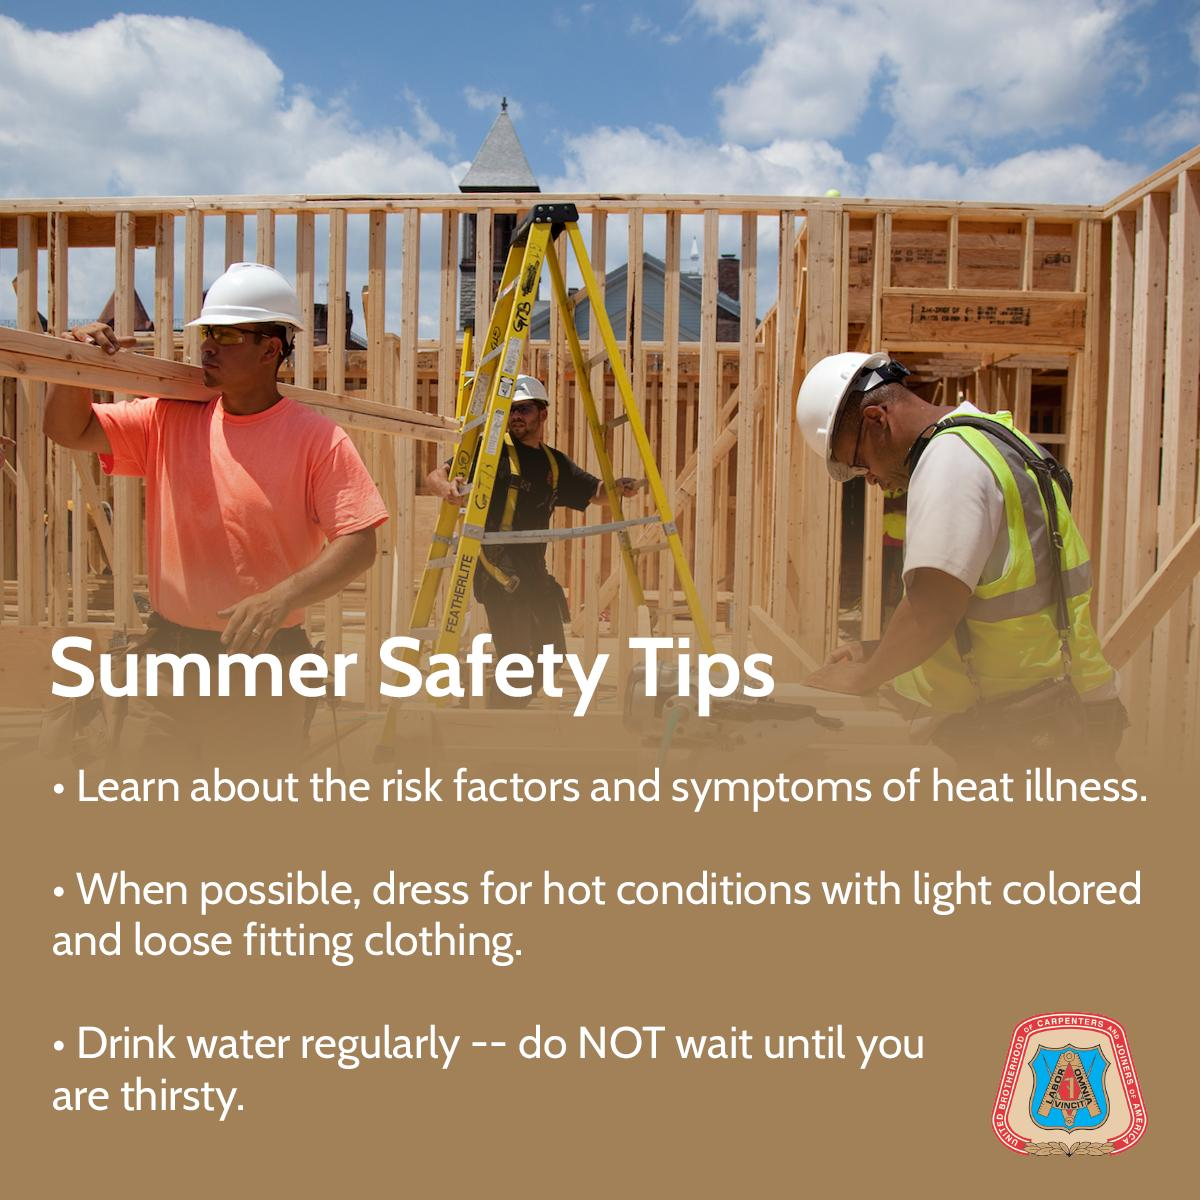 Summer is ~officially~ here. Carpenters work rain or shine, but who doesn't prefer shine  Stay cool out there and don't forget our summer safety tips #NationalSafetyMonth <br>http://pic.twitter.com/Py7Fyt4xNa